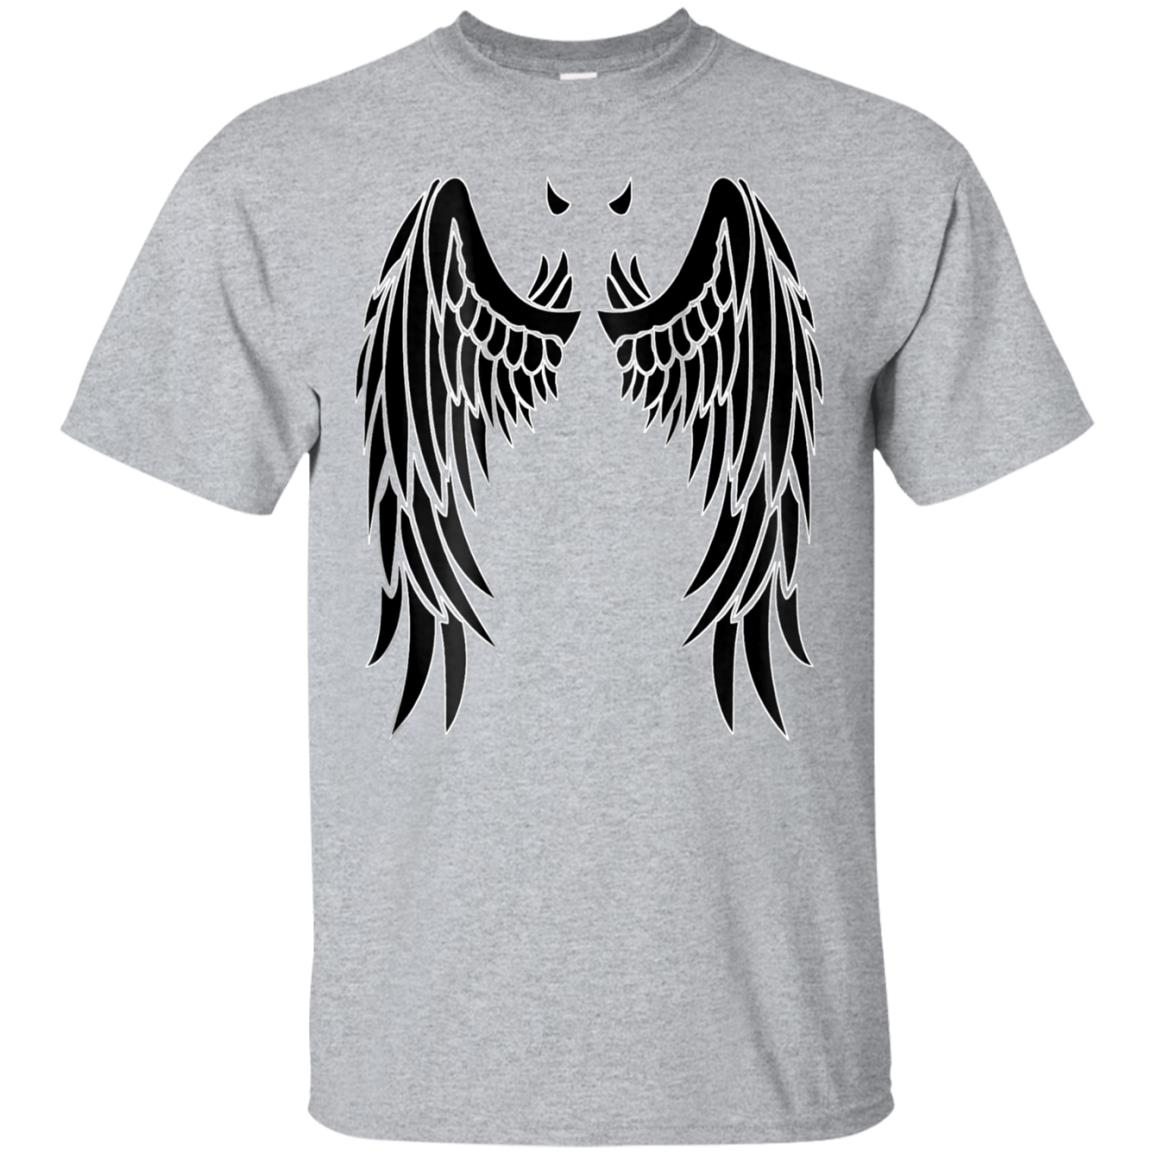 Devil Black Wings & Horn  Back of Shirt Design 99promocode